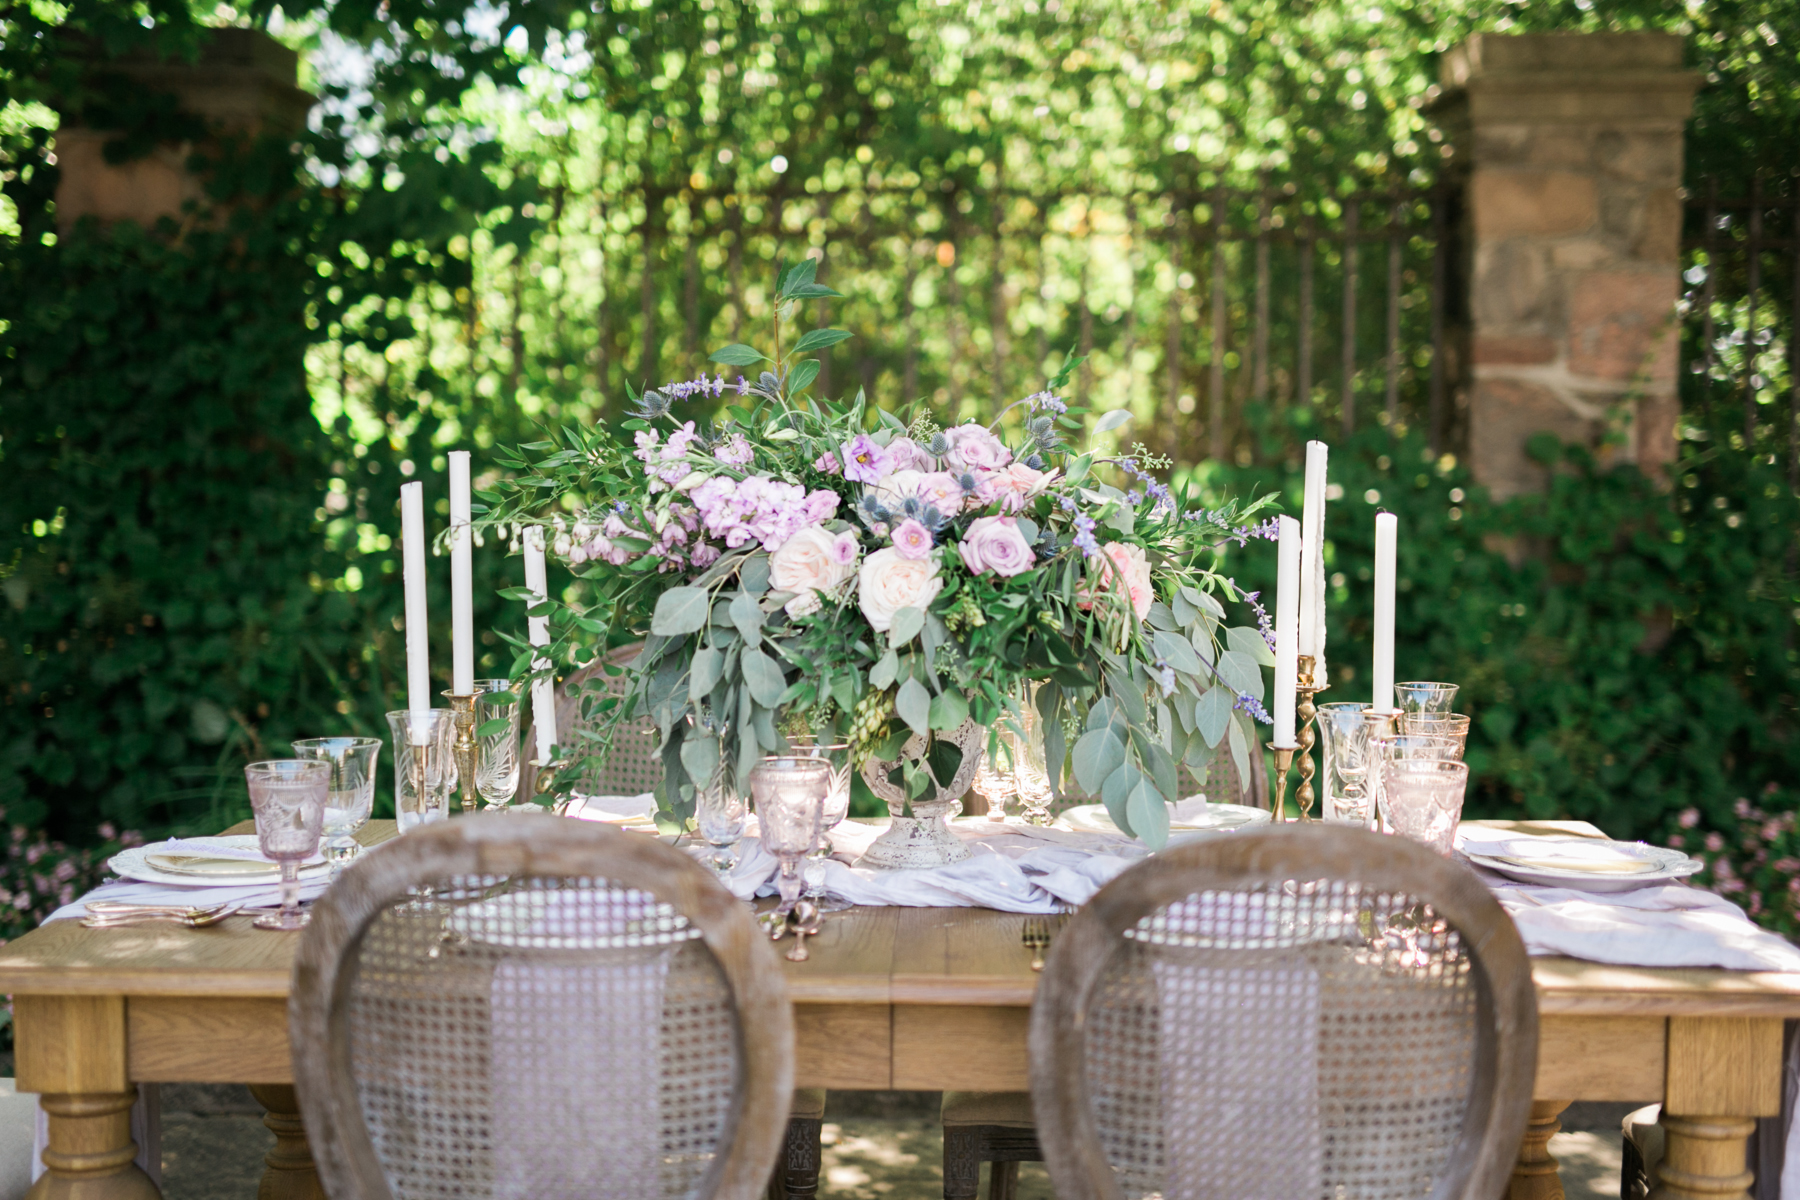 August In Bloom - Romantic outdoor tablescape - Fairytale Wedding (Wedluxe)